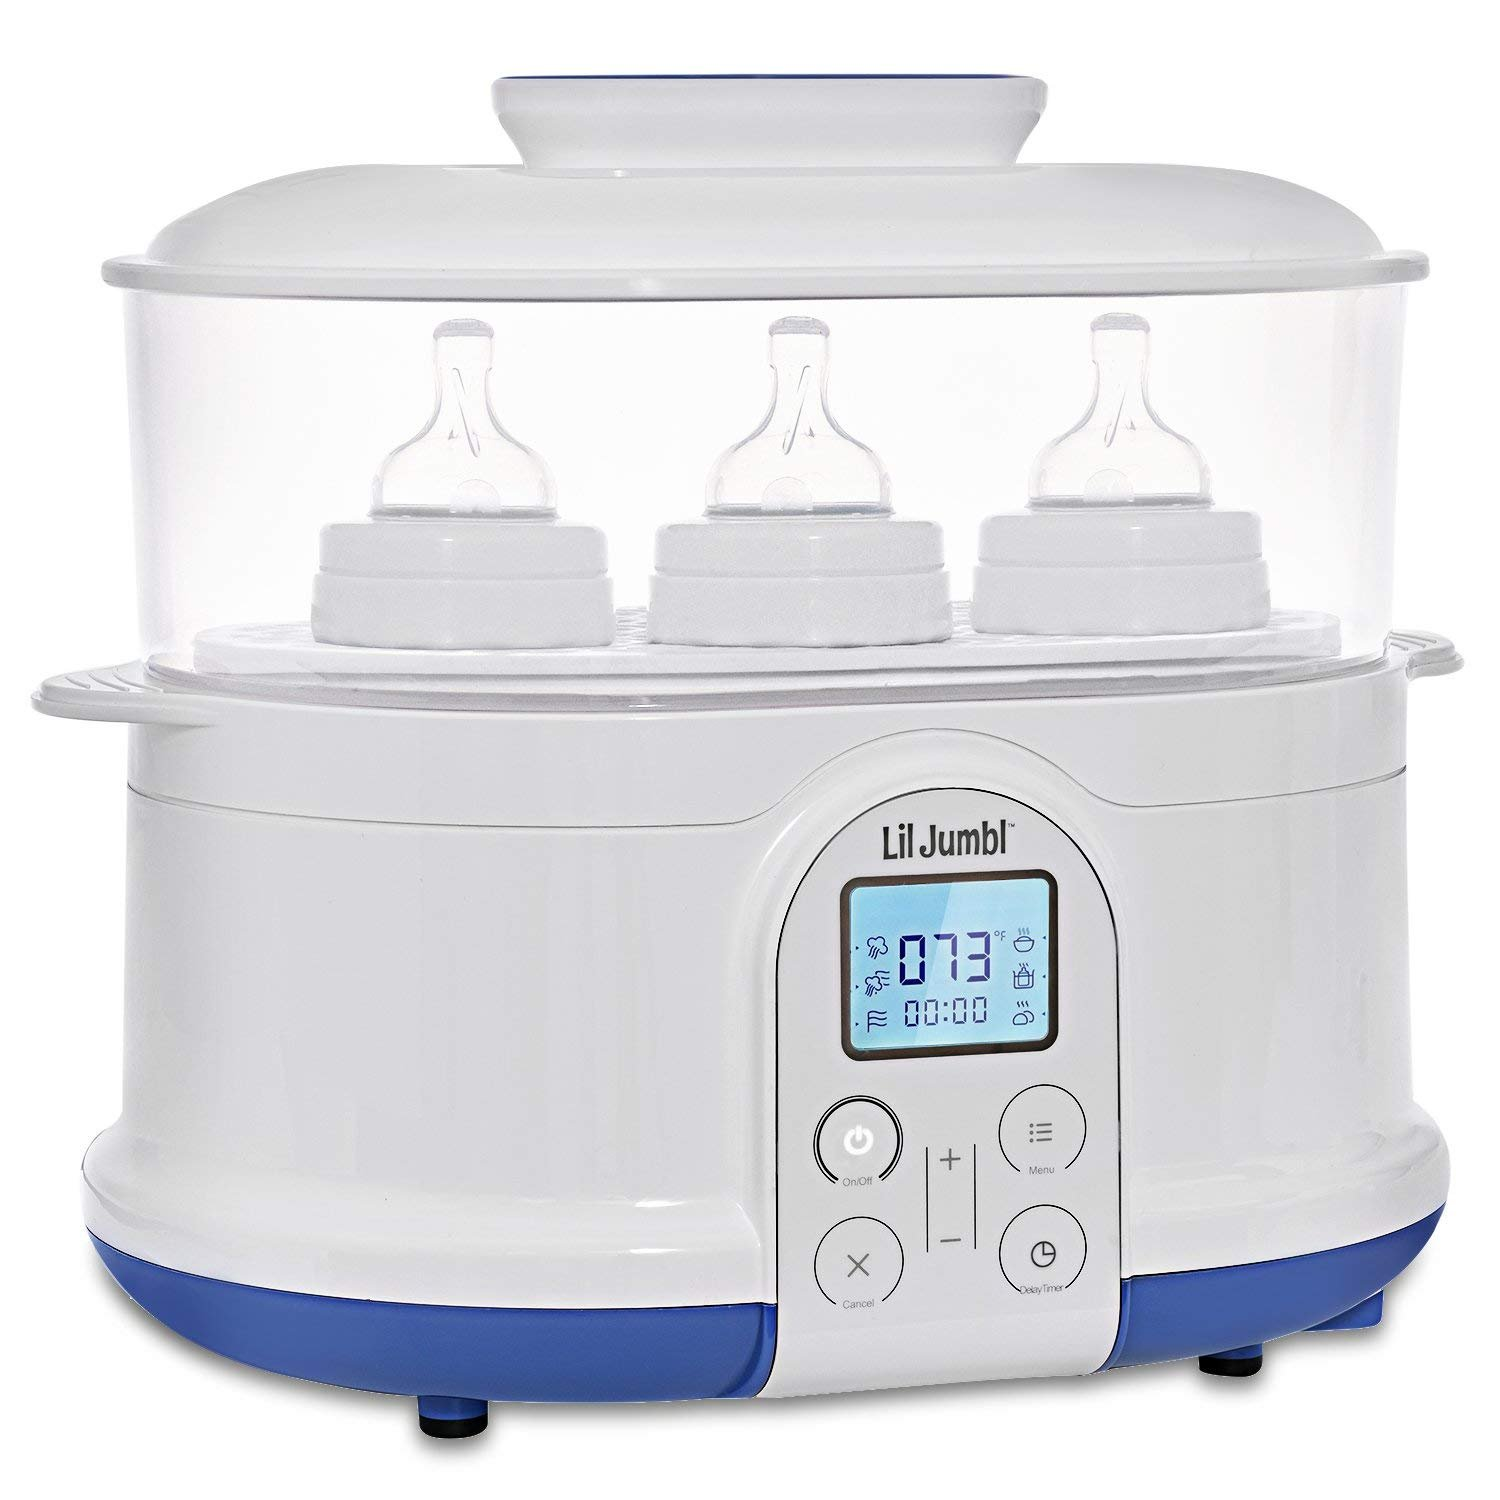 Lil' Jumbl 4-in-1 Bottle Sterilizer Warmer & Dryer w/Food Steamer Function - Digital LCD Display with Custom Heat Settings Lil' Jumbl